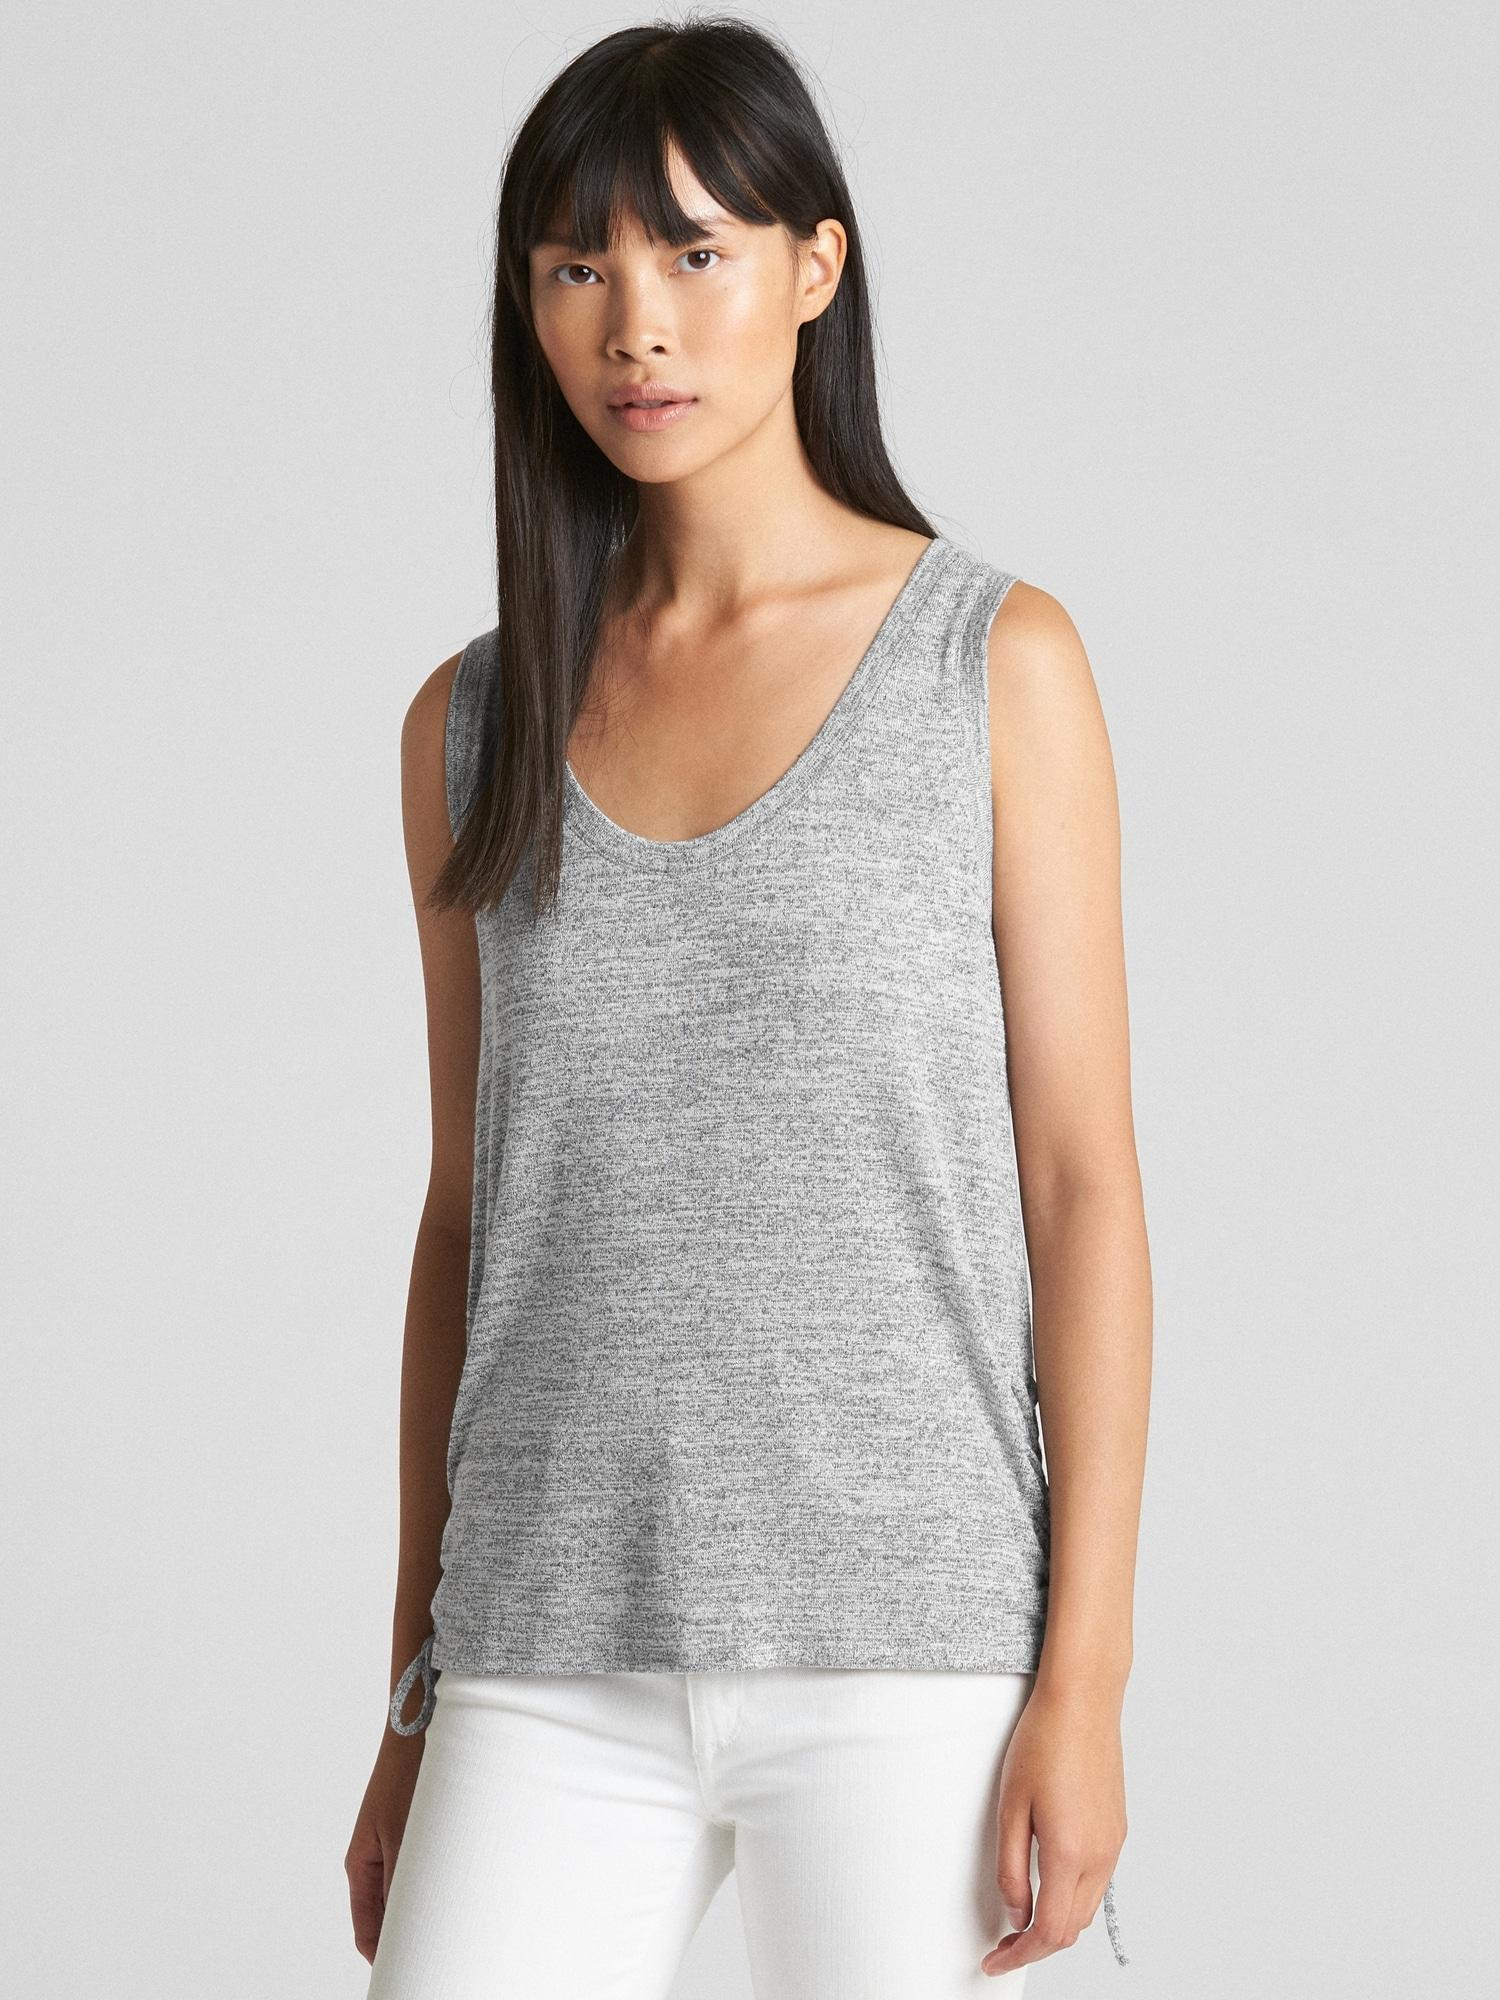 52cab3e2 Lyst - Gap Softspun Lace-up Tank Top in Gray